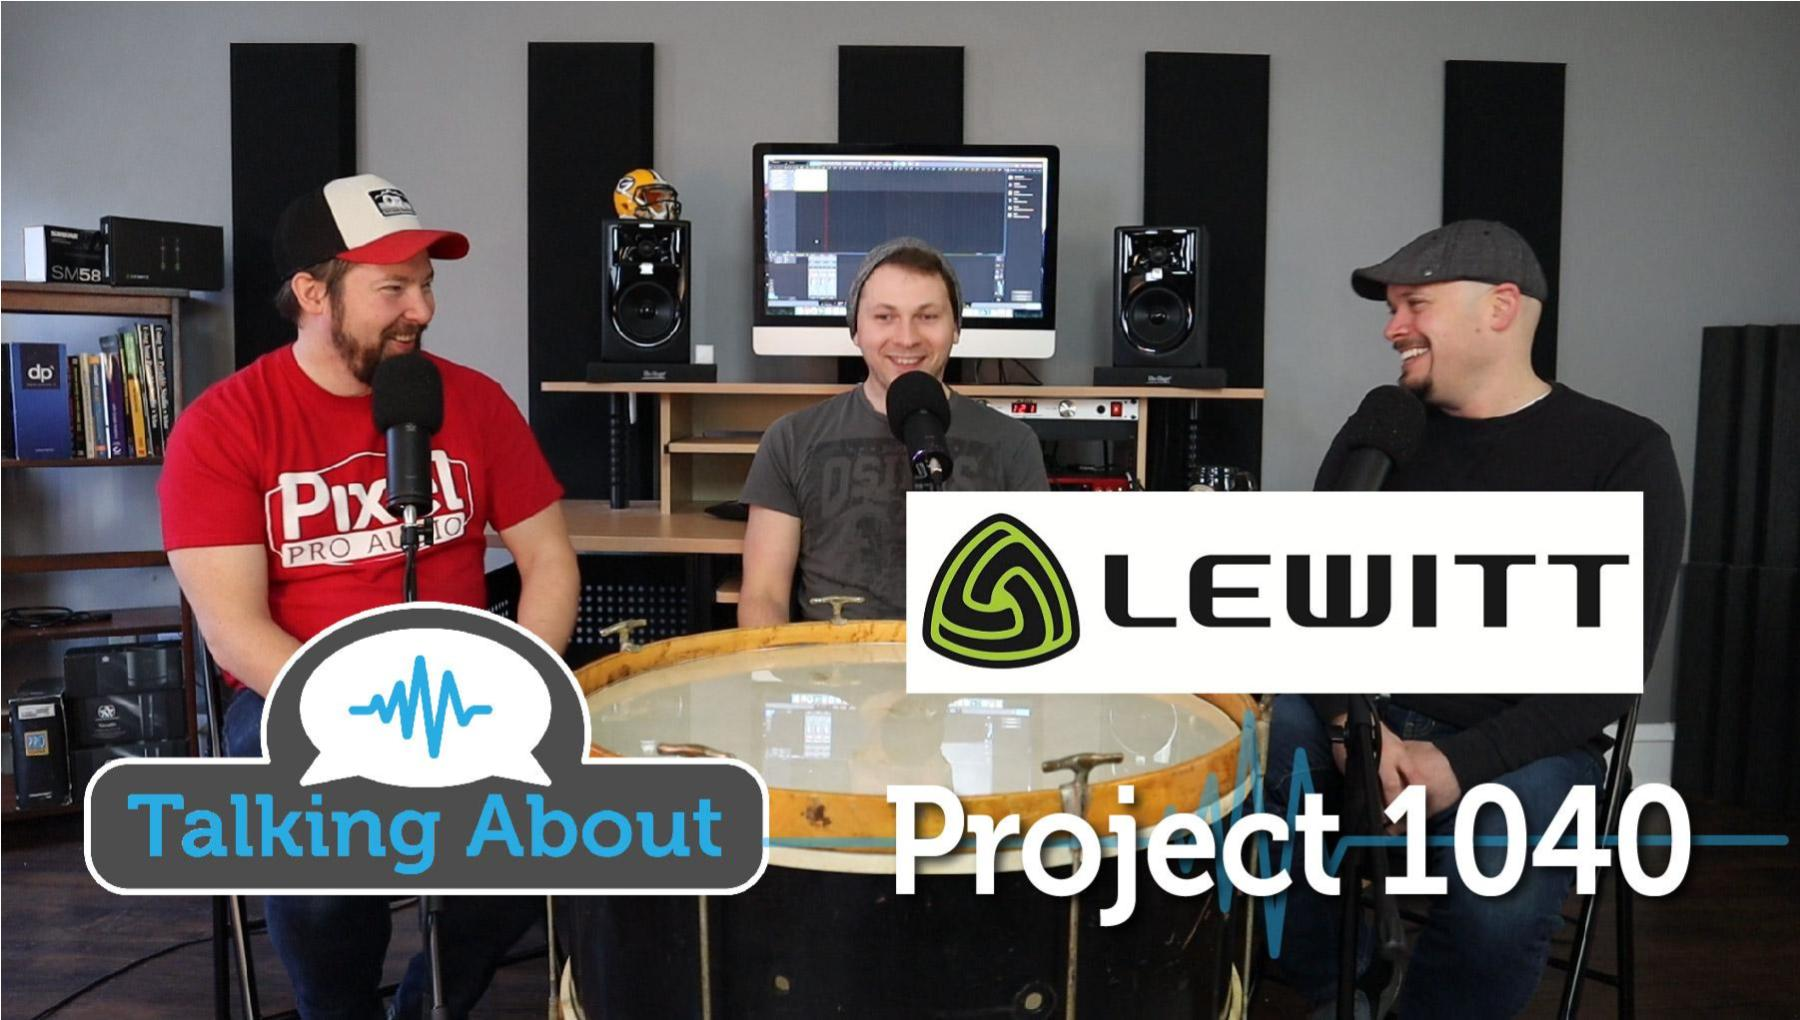 Lewitt Project 1040 - Could it be the Ultimate Studio Mic?